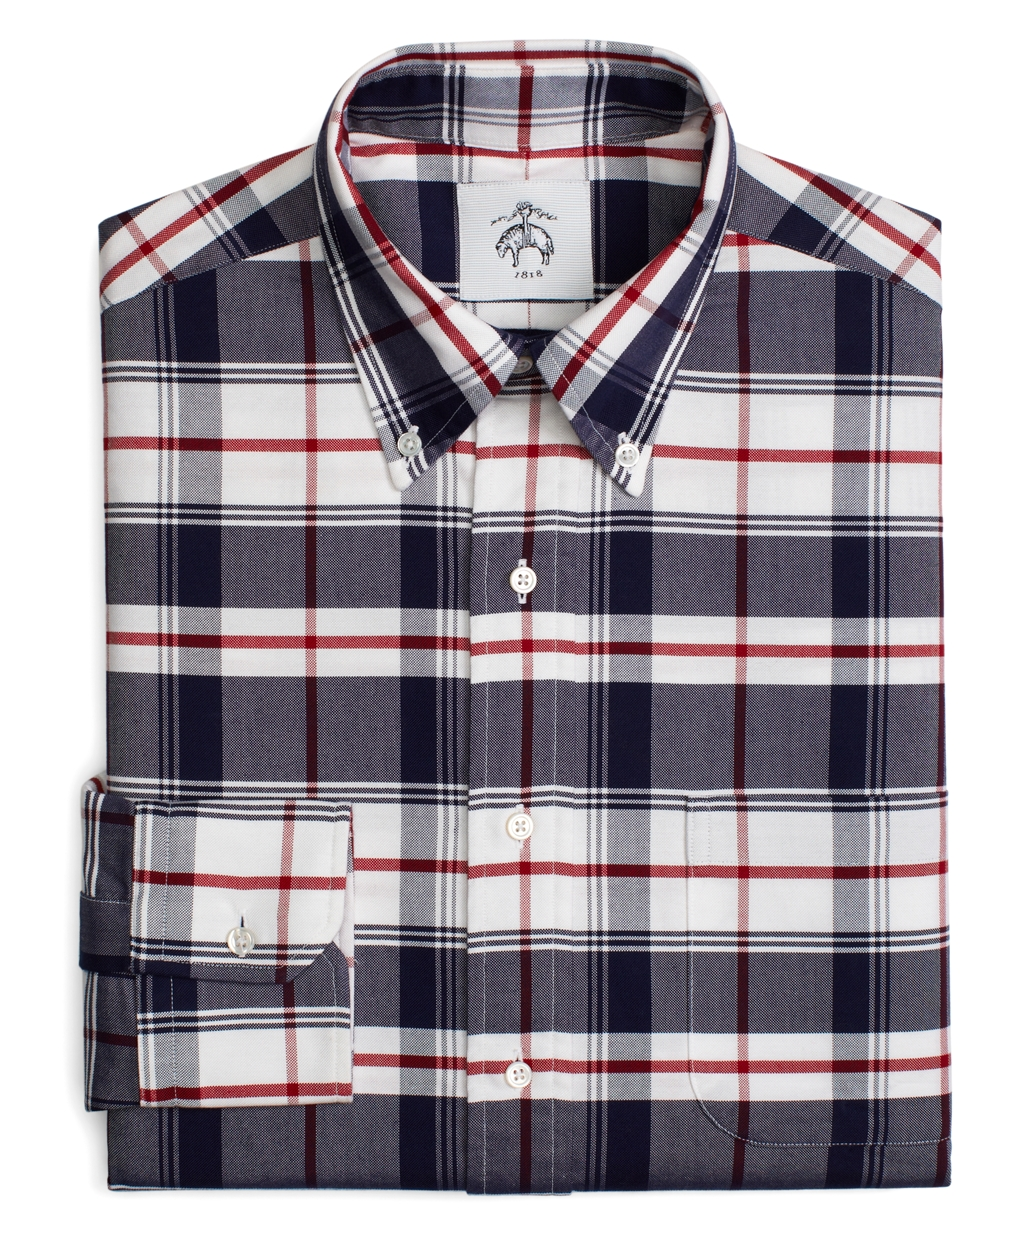 Lyst - Brooks brothers Tartan Button-Down Shirt in Blue for Men